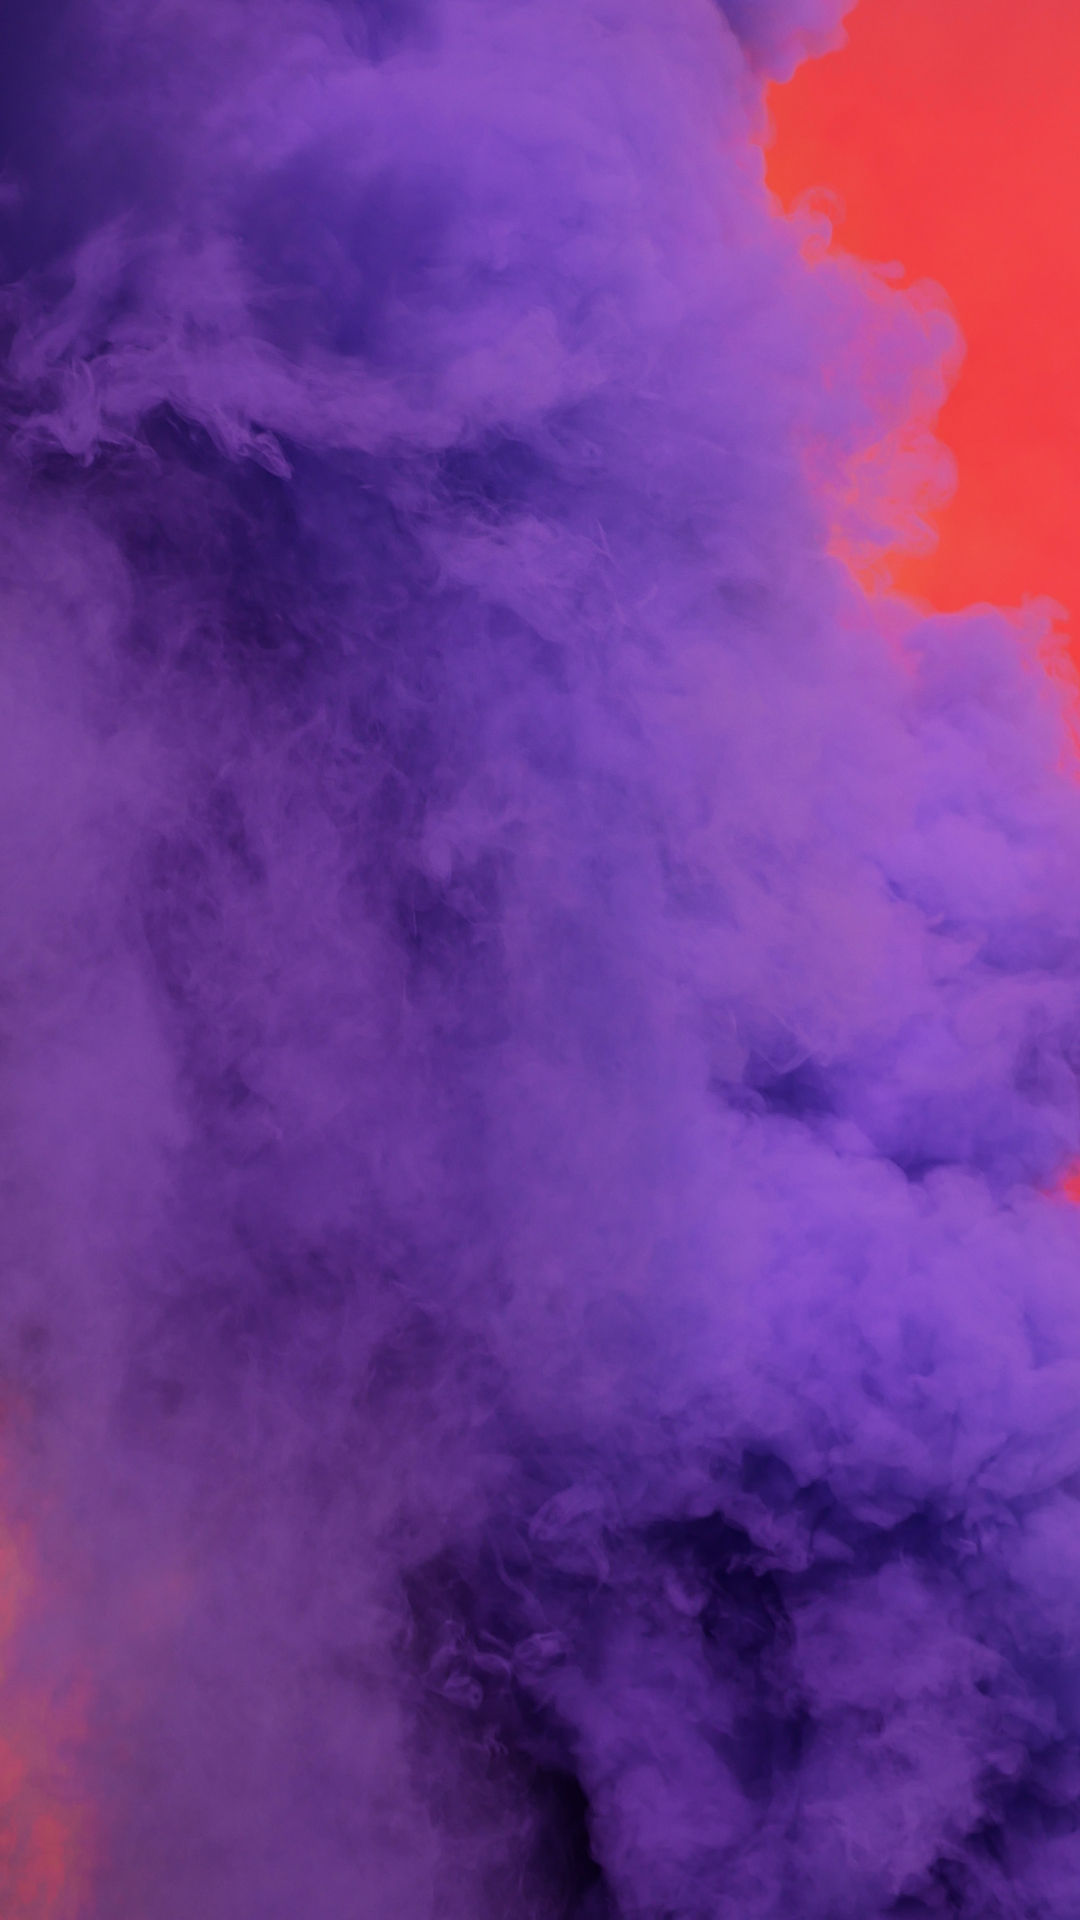 Red And Purple Smoke Iphone Wallpaper Red Apple Iphone Xr 57269 Hd Wallpaper Backgrounds Download